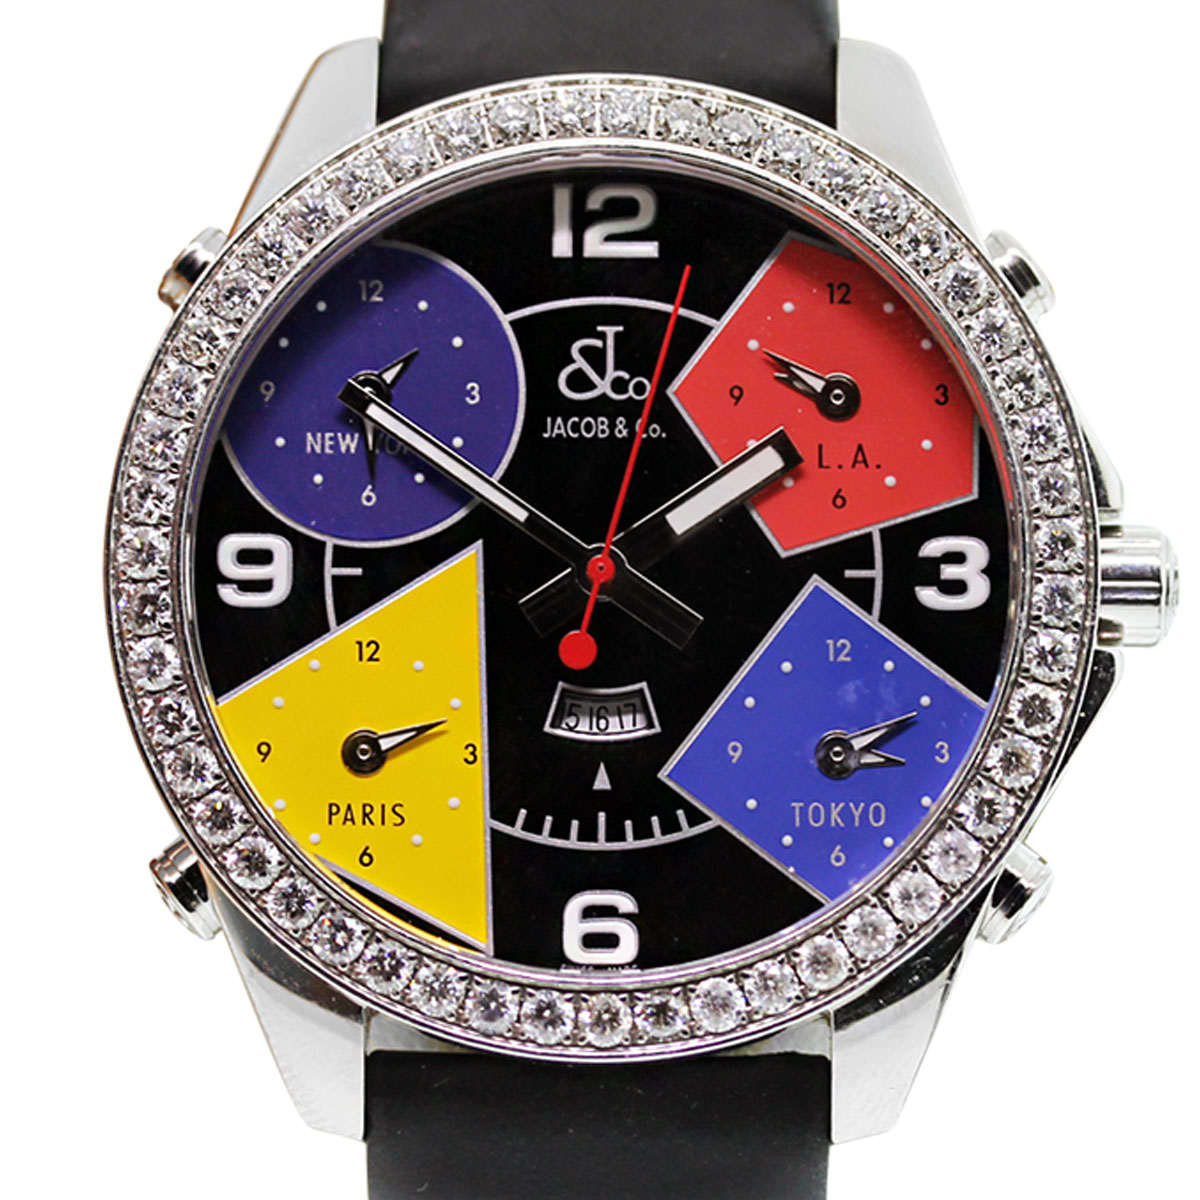 Jacob co s5993 five time zone diamond watch for Jacob co watches